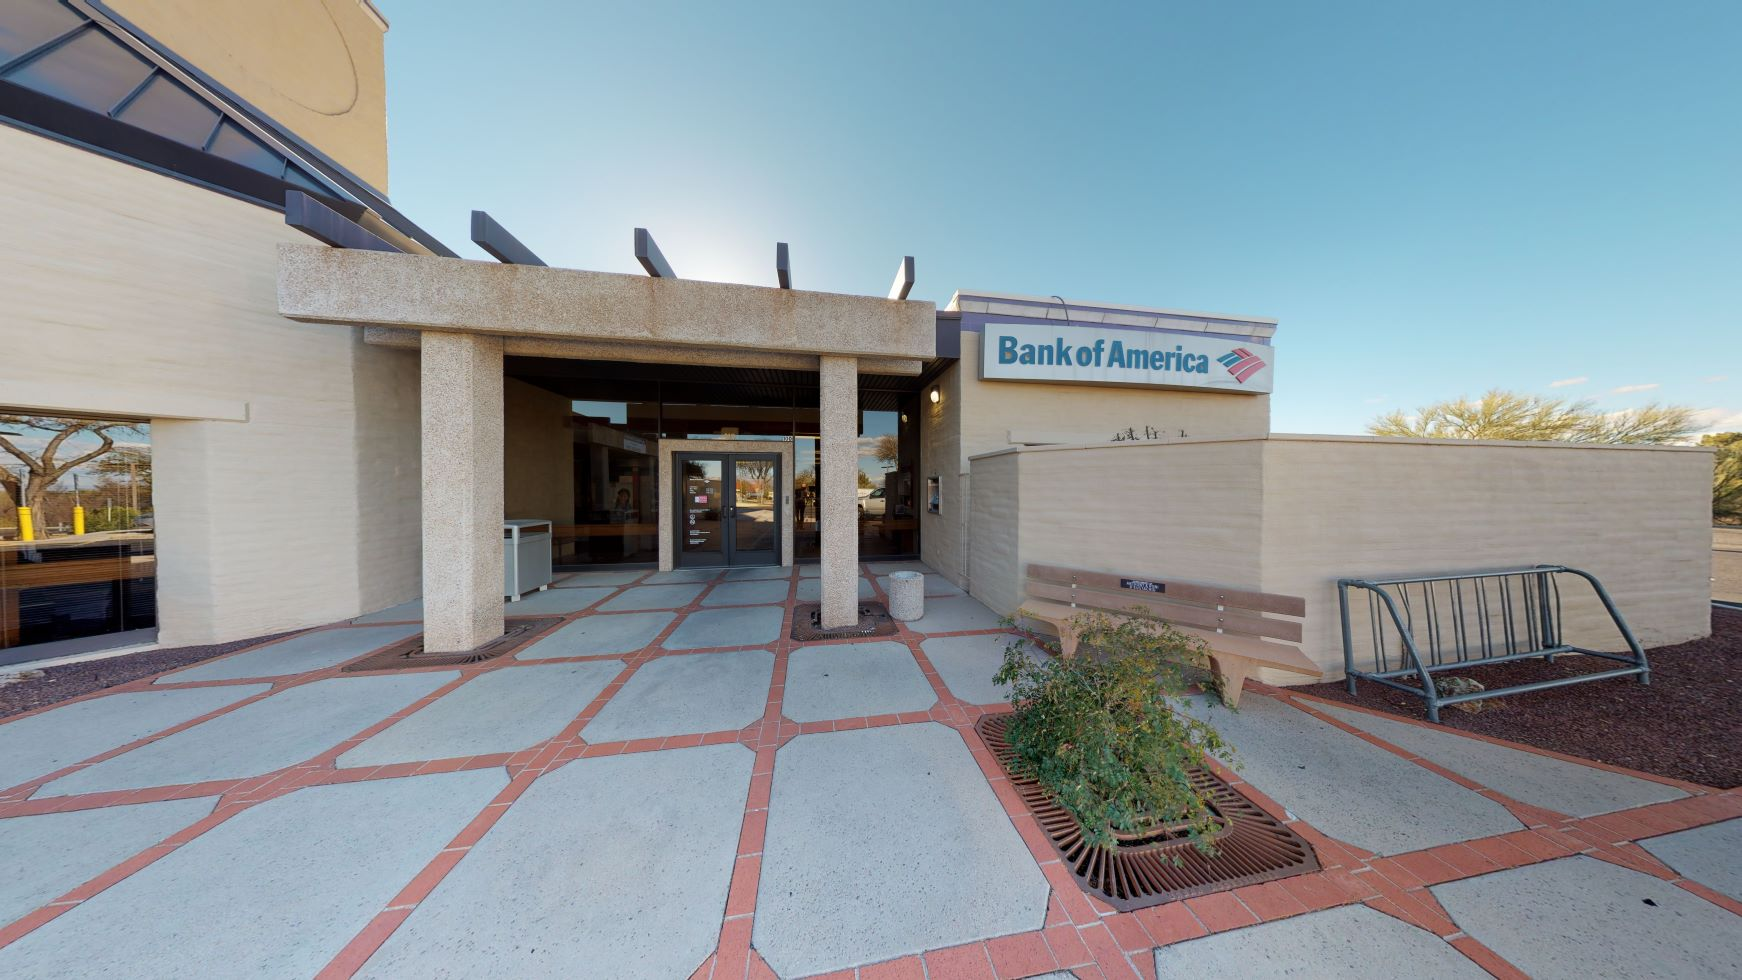 Bank of America financial center with drive-thru ATM | 410 W Continental Rd STE 100, Green Valley, AZ 85622